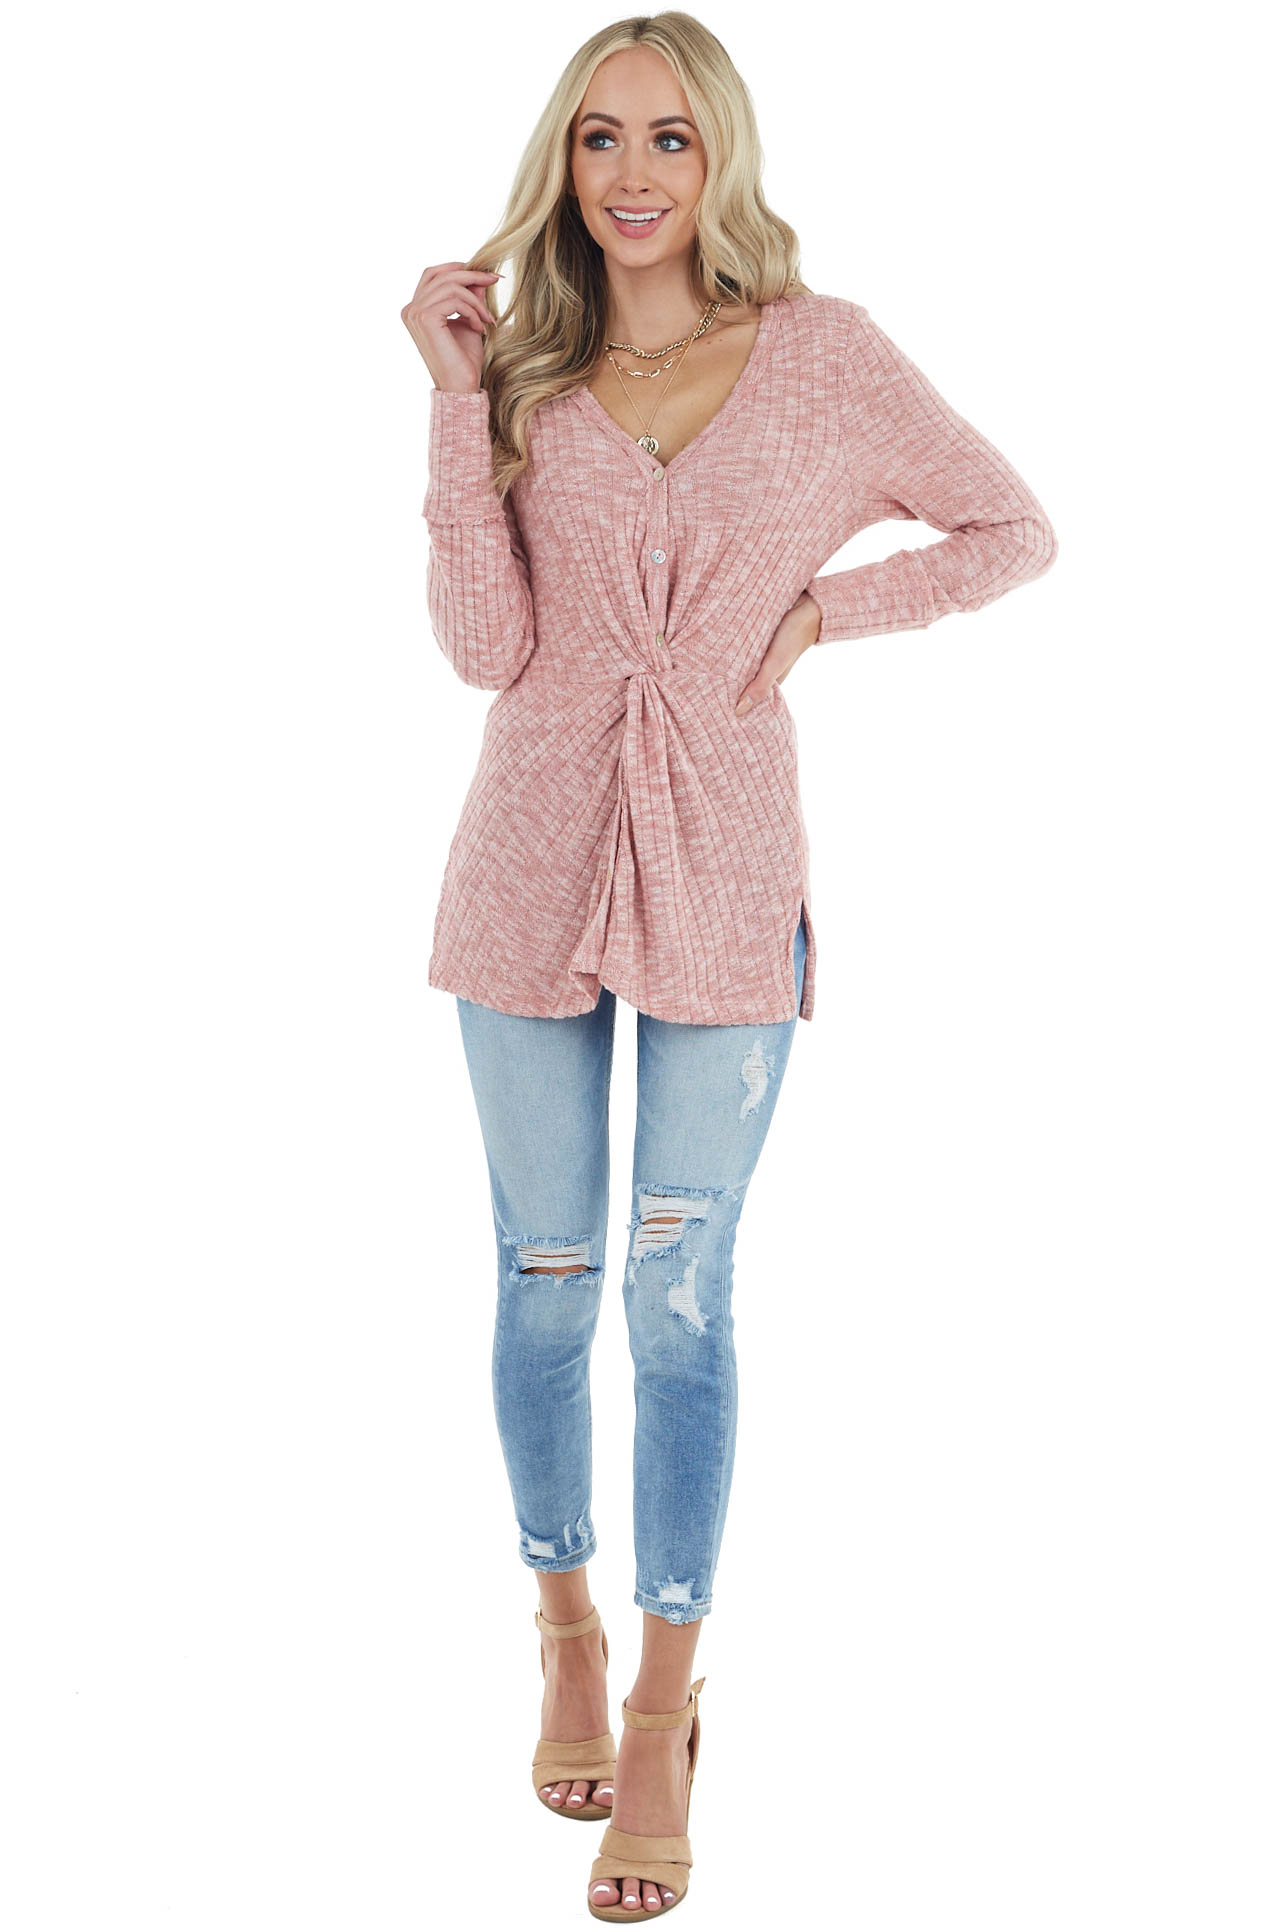 Heathered Blush Textured Ribbed Knit Button Up Top with Knot